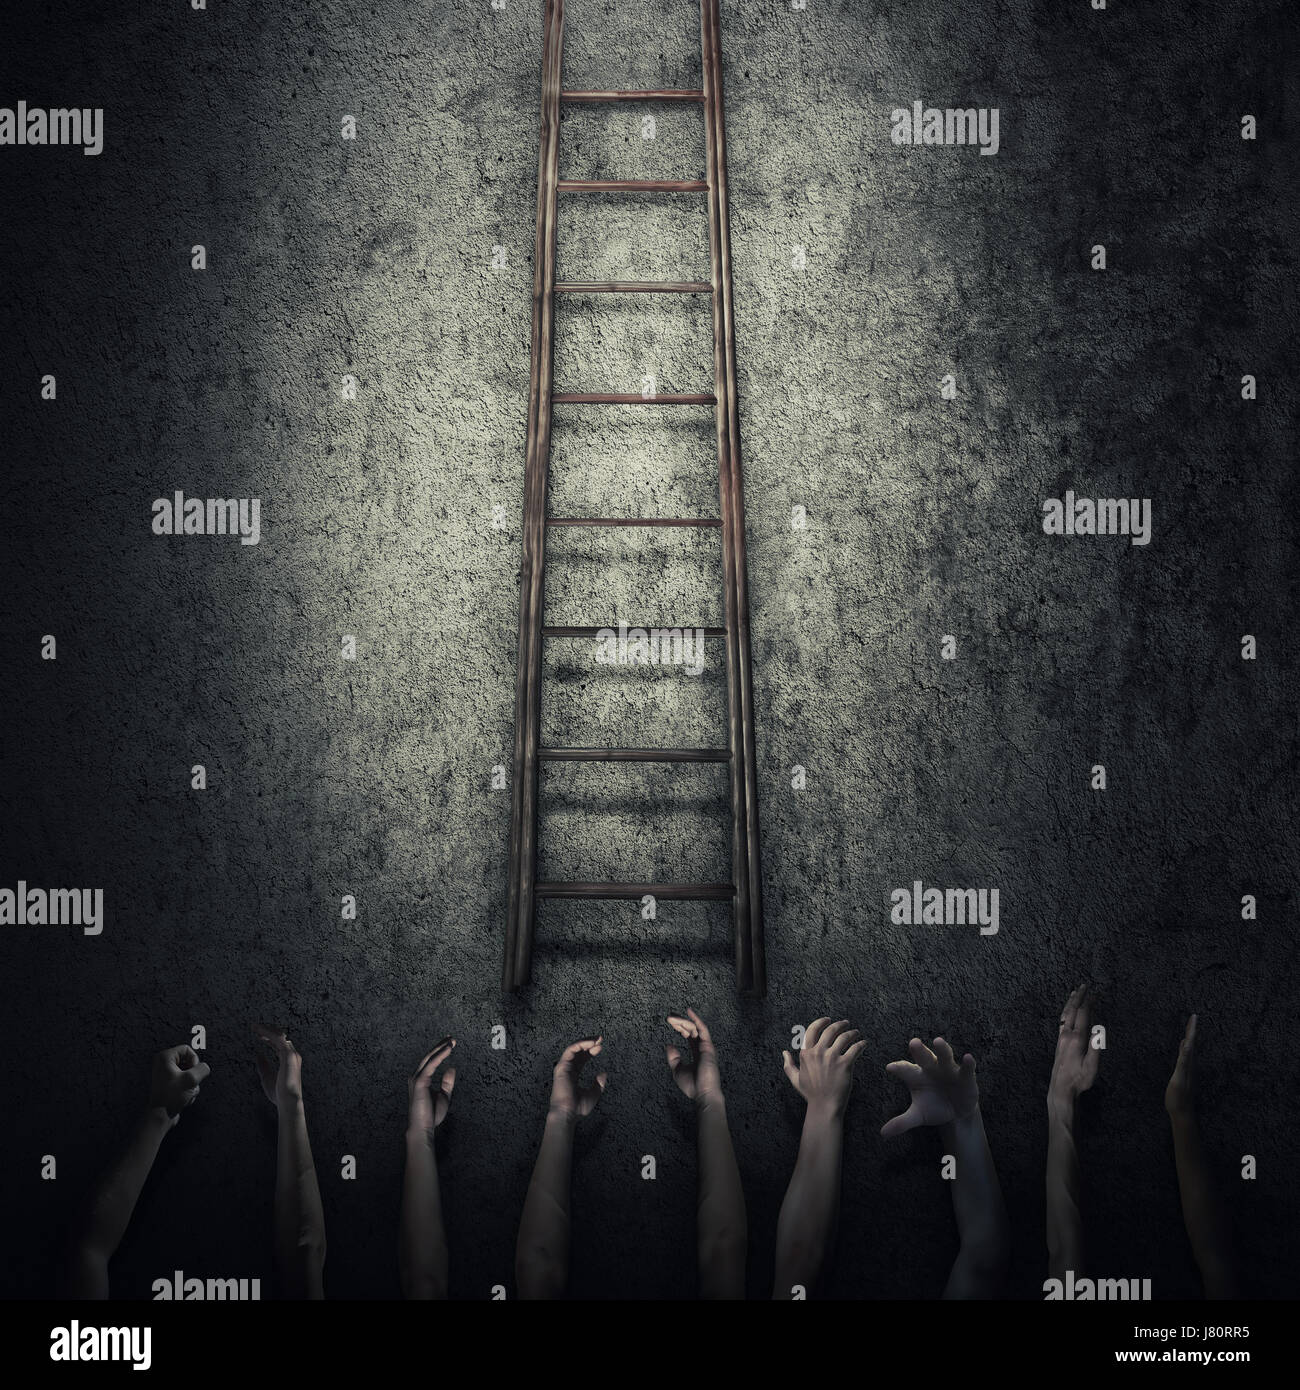 Abstract idea concept as a lot of human hands stretched out to reach a ladder and escape from a dark room prison. - Stock Image